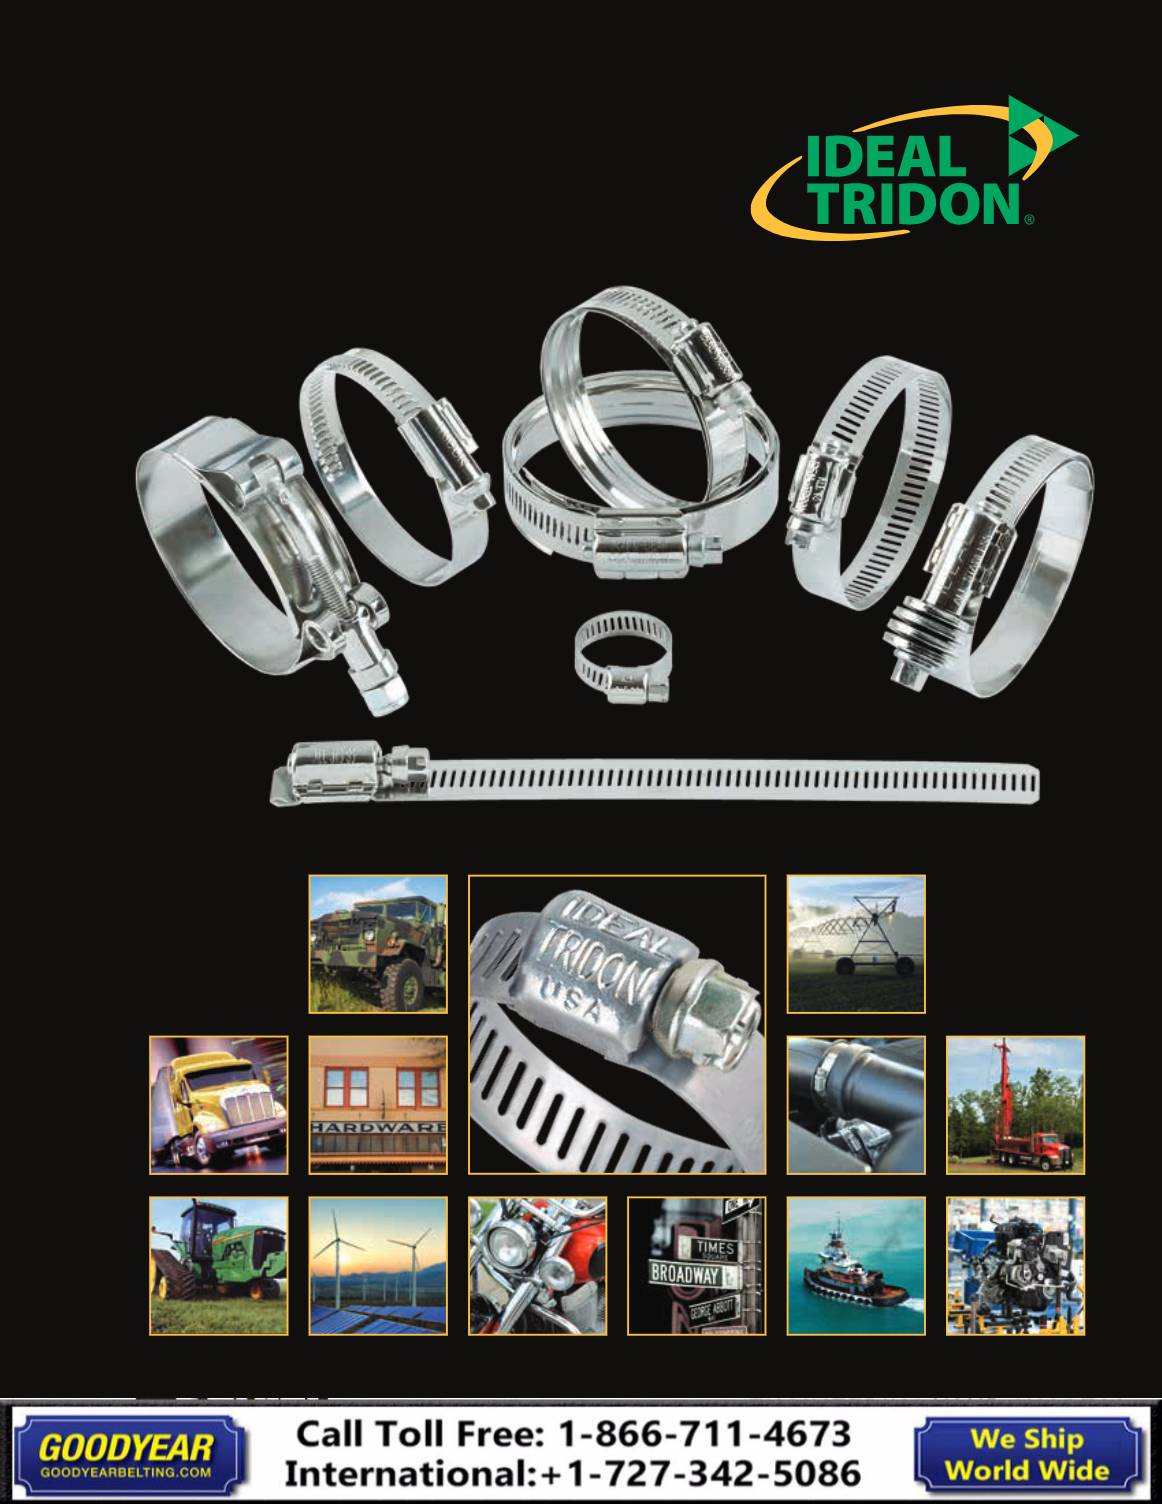 Ideal Tridon Catalog 2018